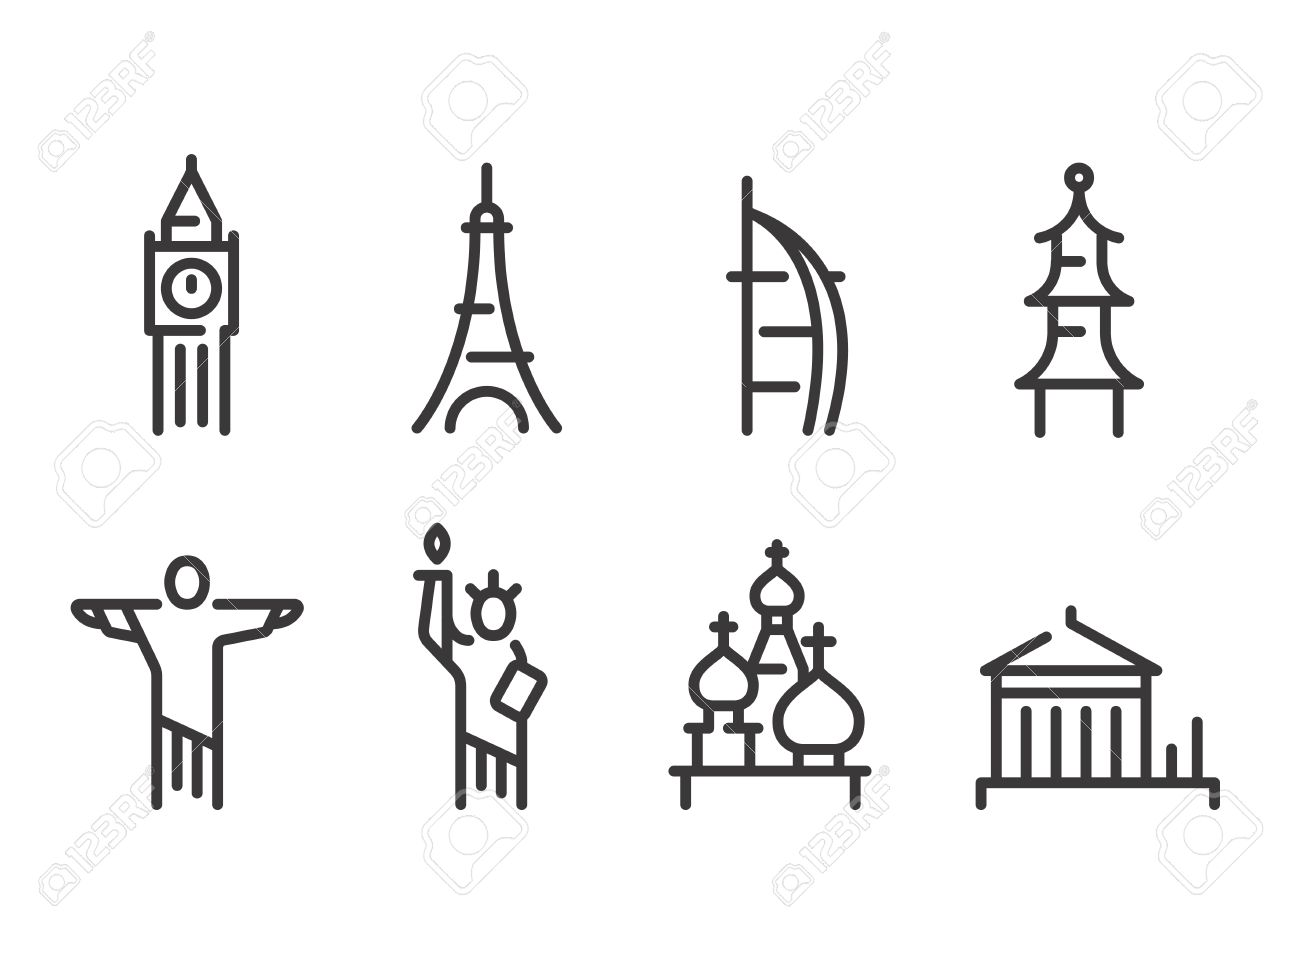 Landmarks icons set world capitals symbols paris and london landmarks icons set world capitals symbols paris and london moscow and new york buycottarizona Image collections